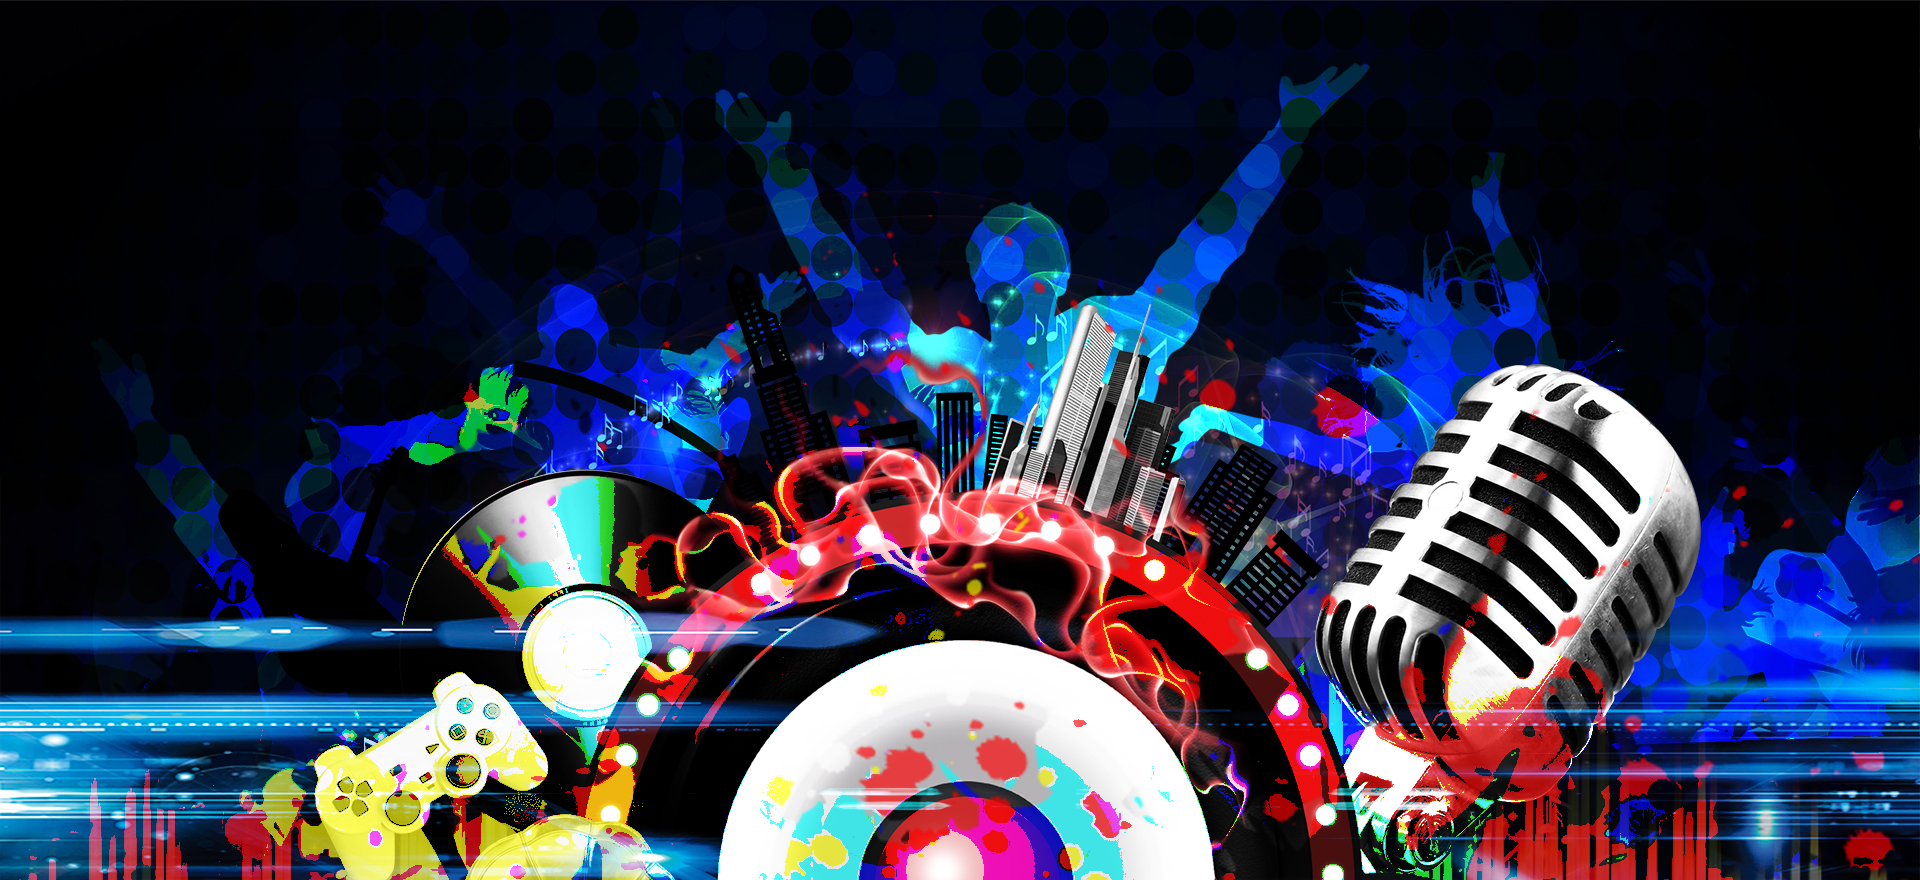 cool music carnival music festival poster background  cool